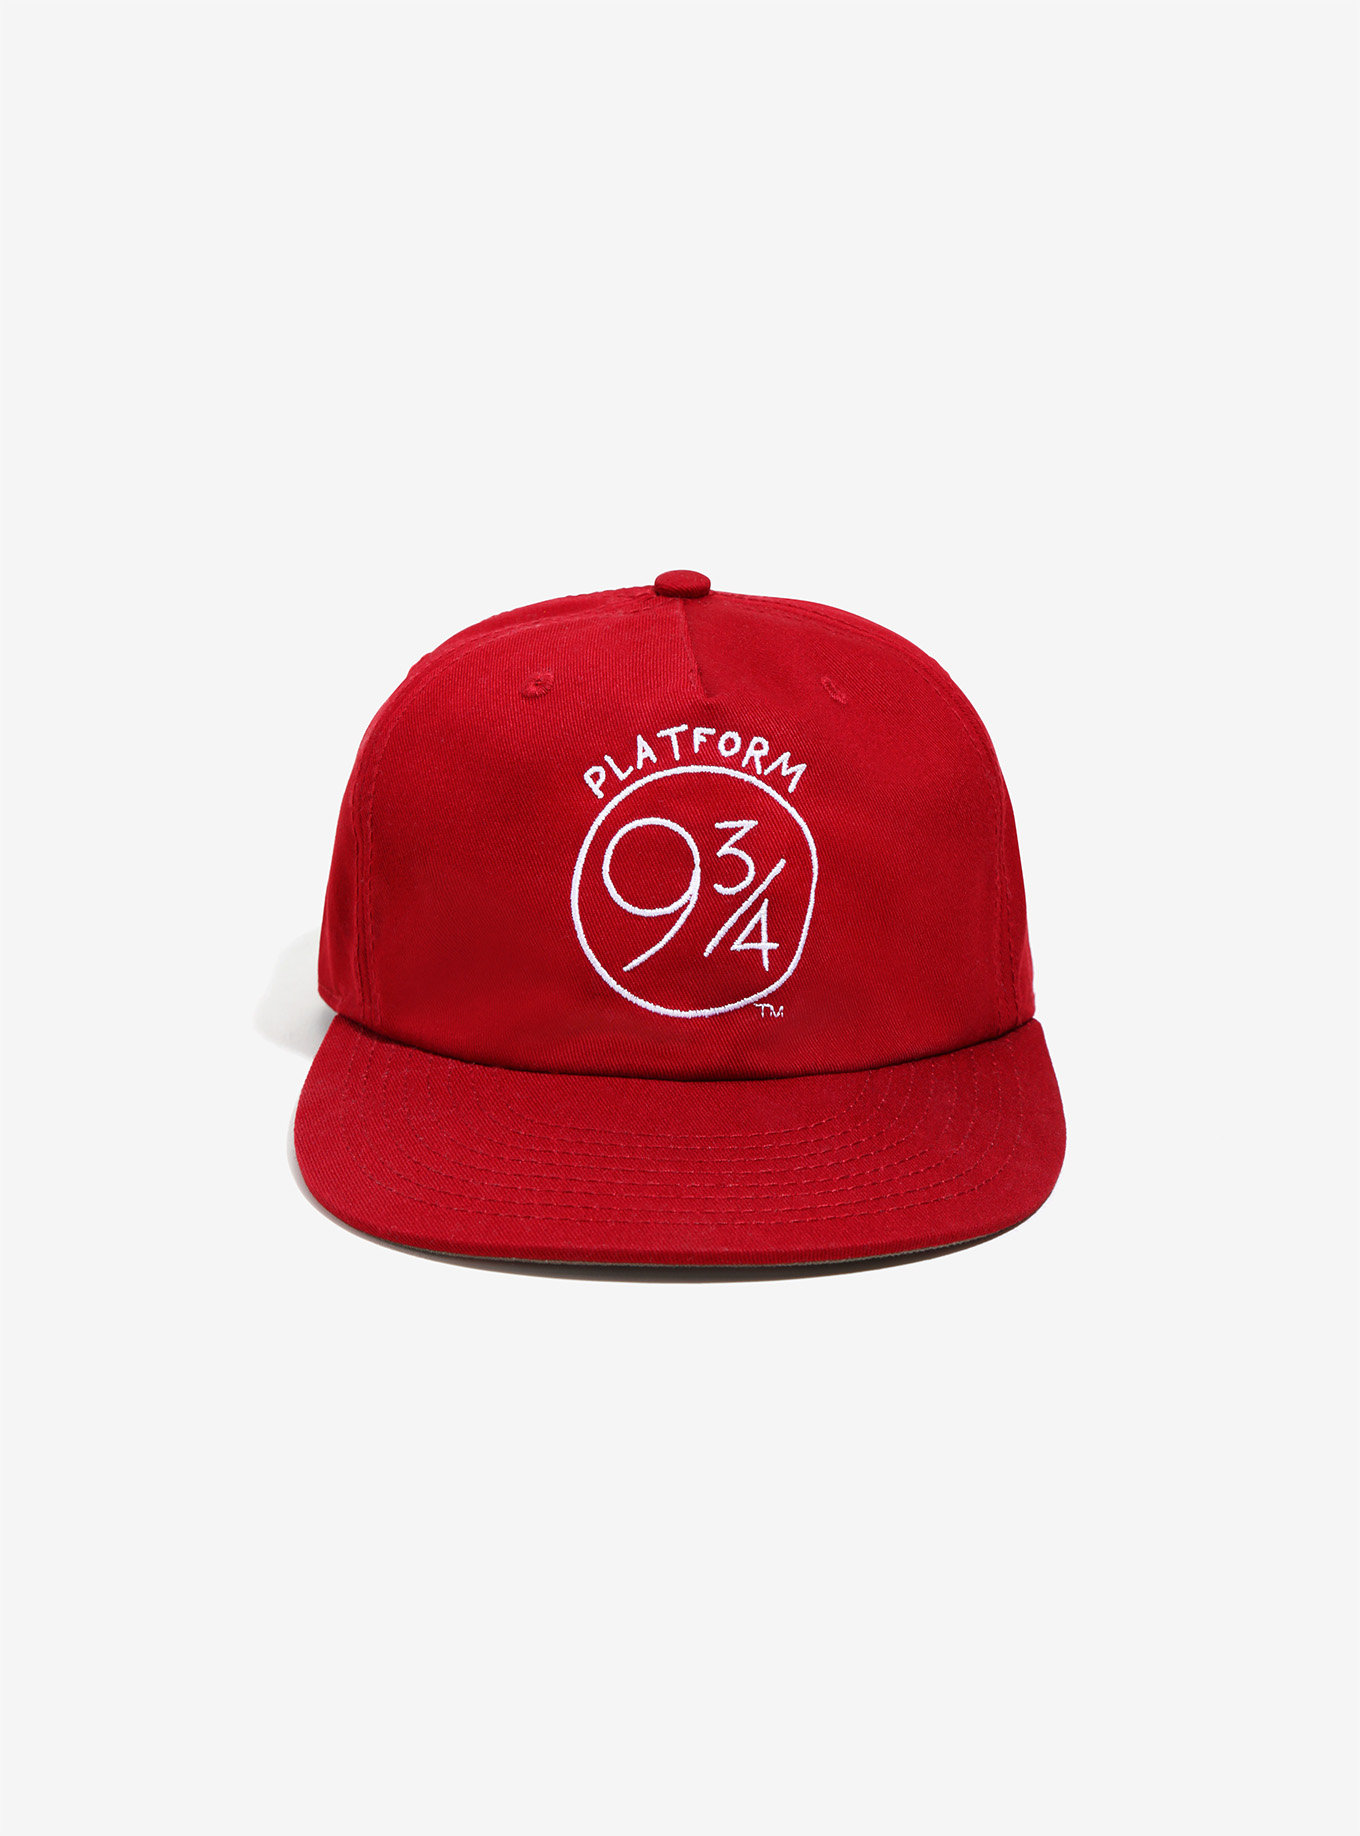 harry-potter-strapback.jpg